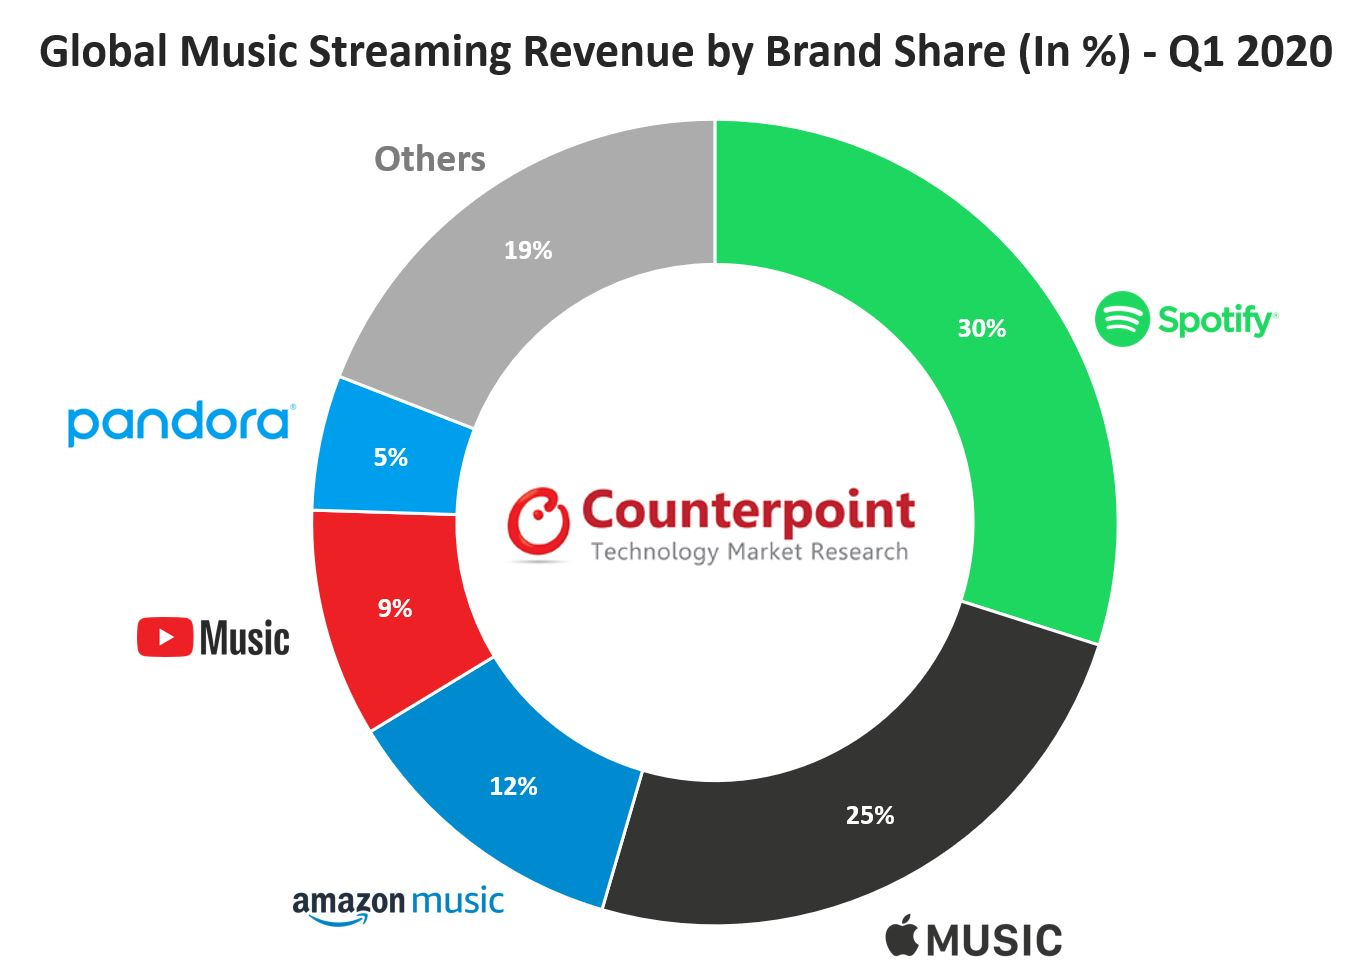 Global Music Streaming Revenue by Brand Share